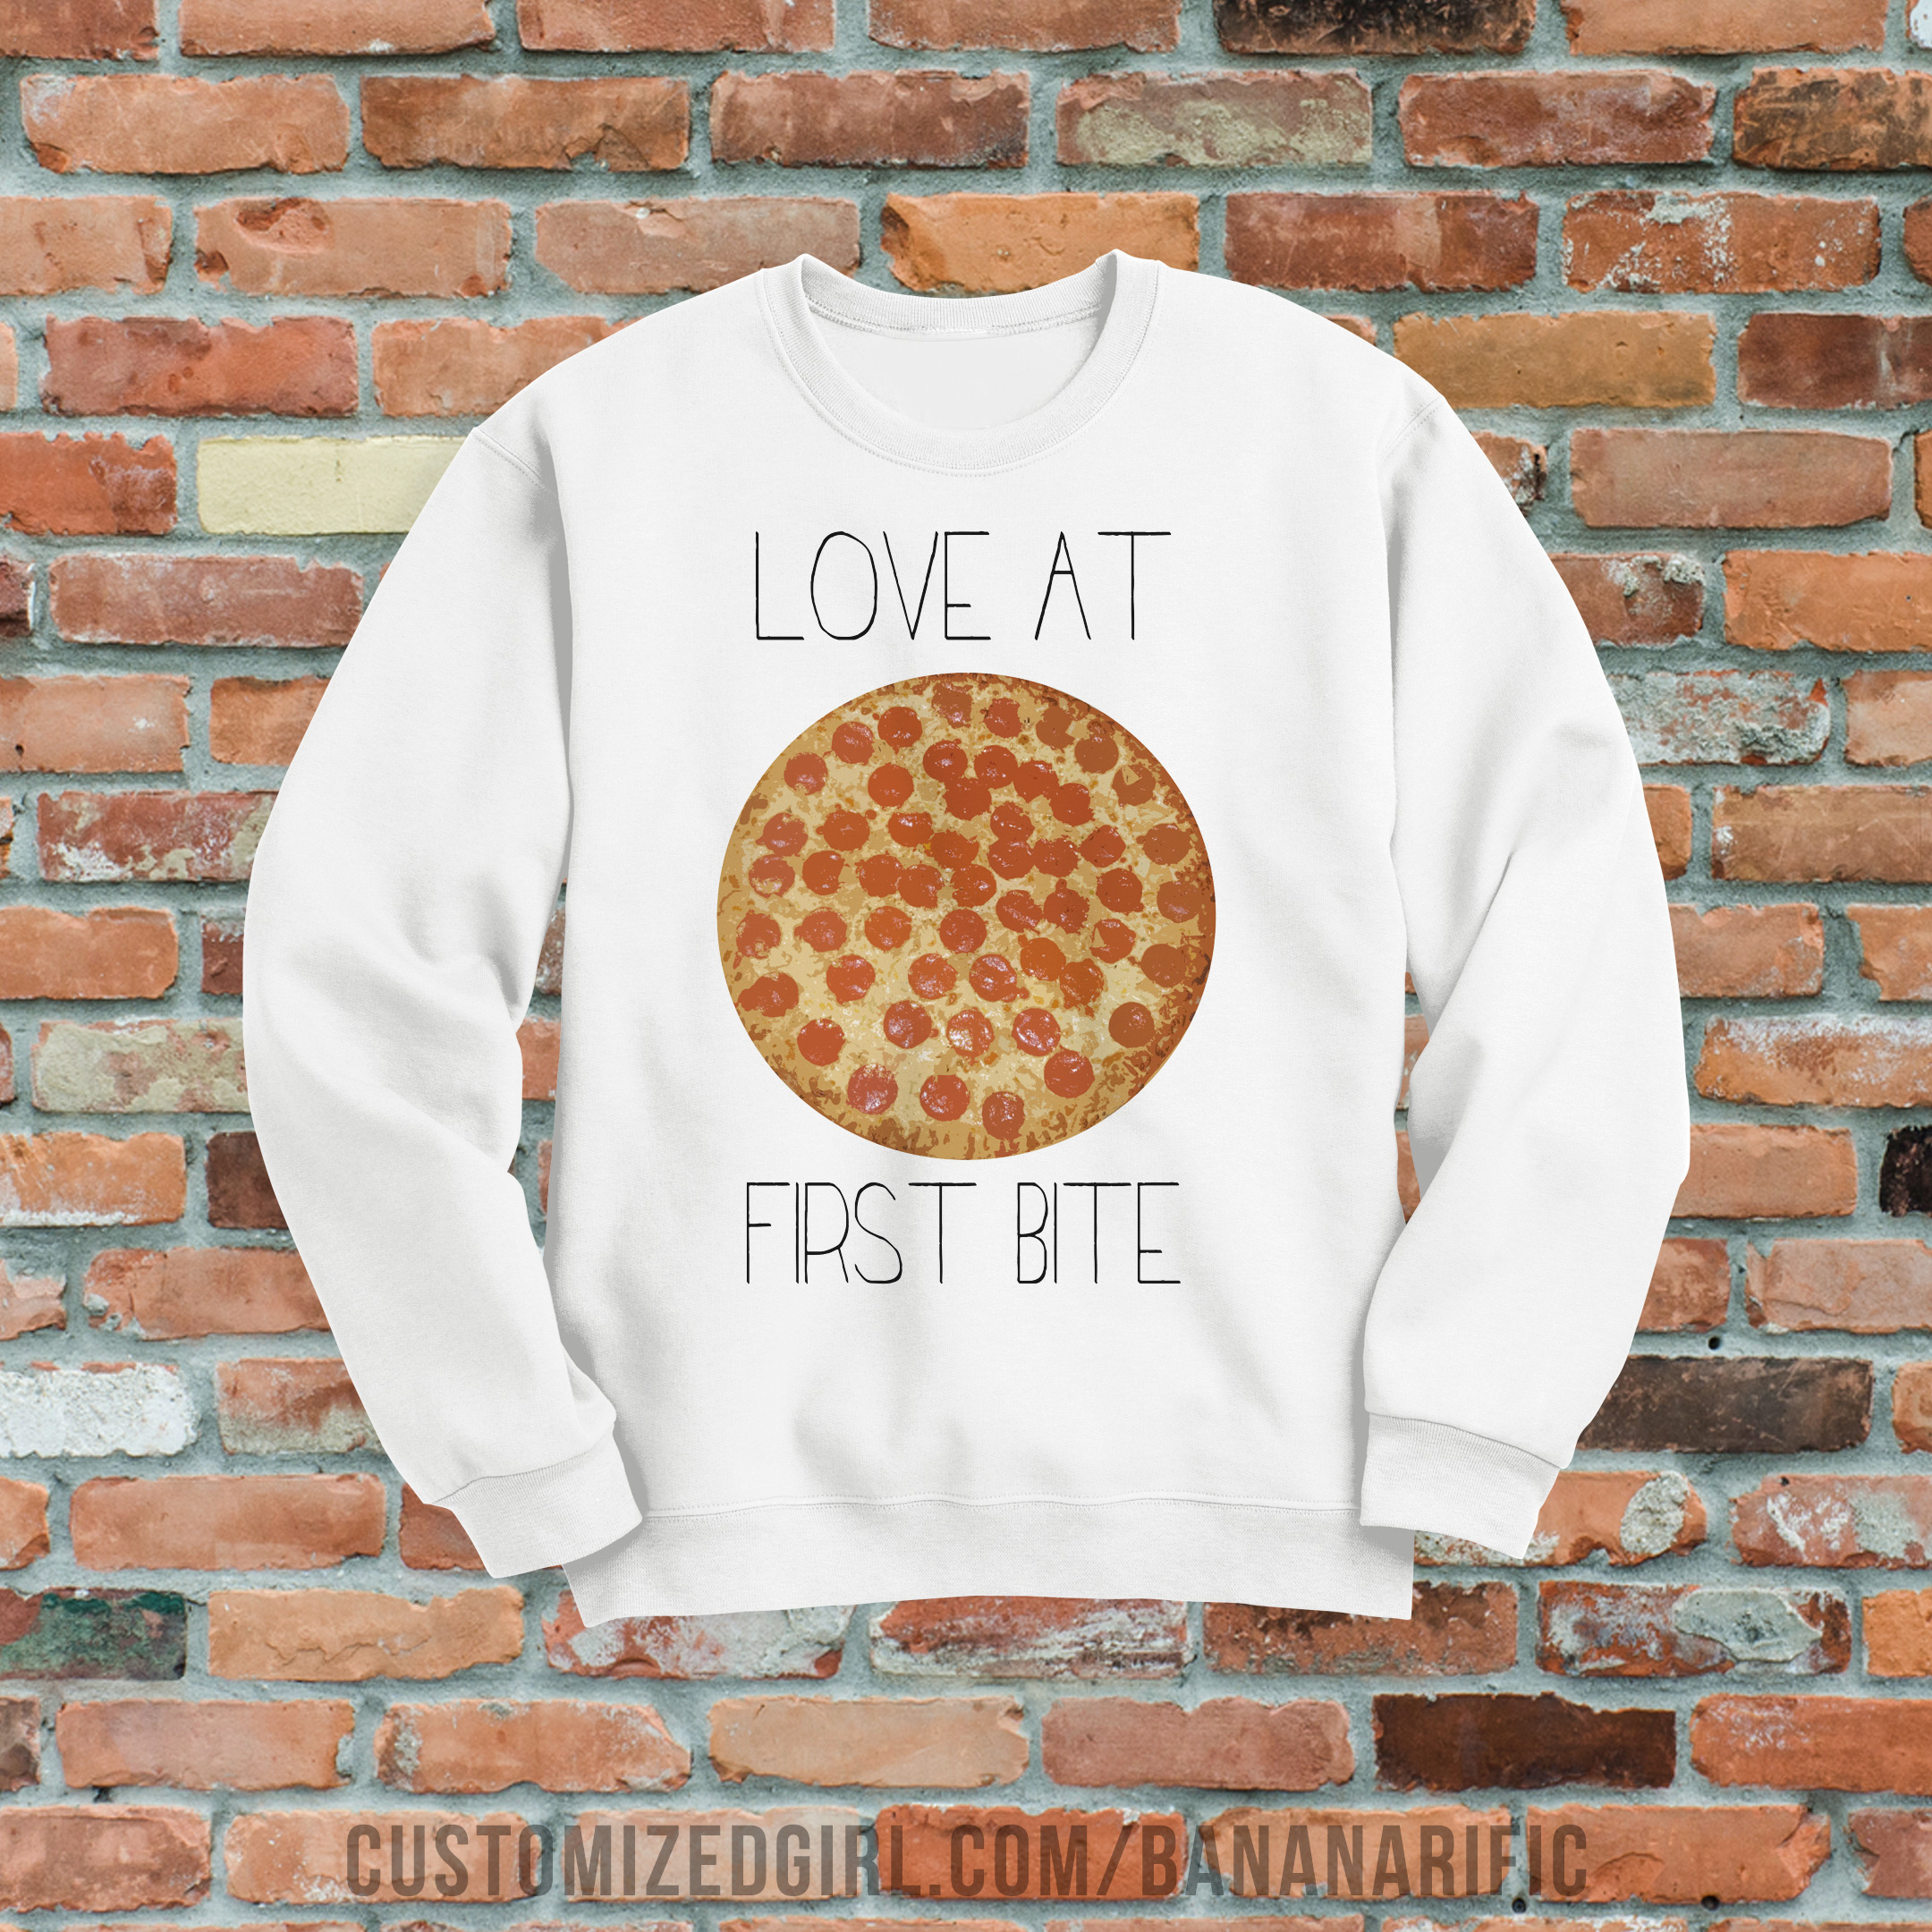 Pizza Shirts